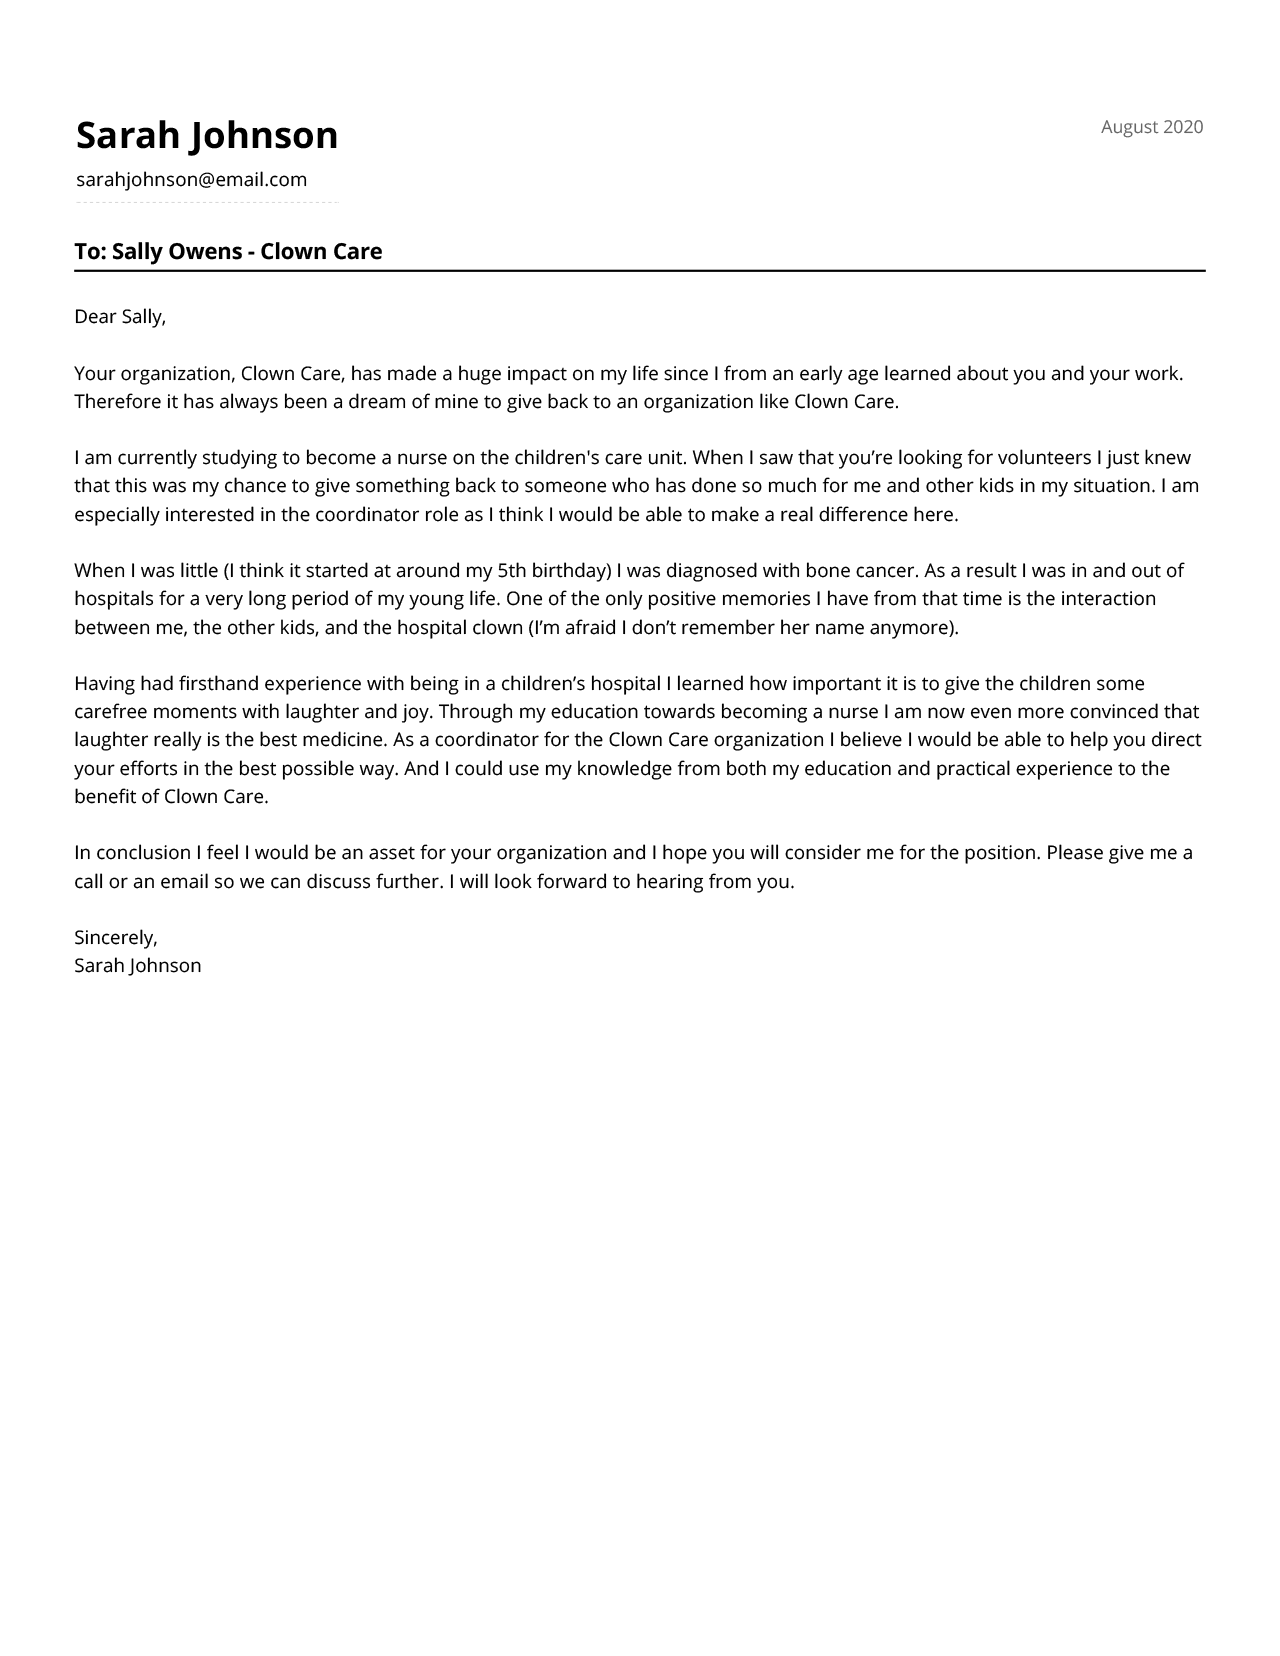 A motivation letter example for a volunteering position